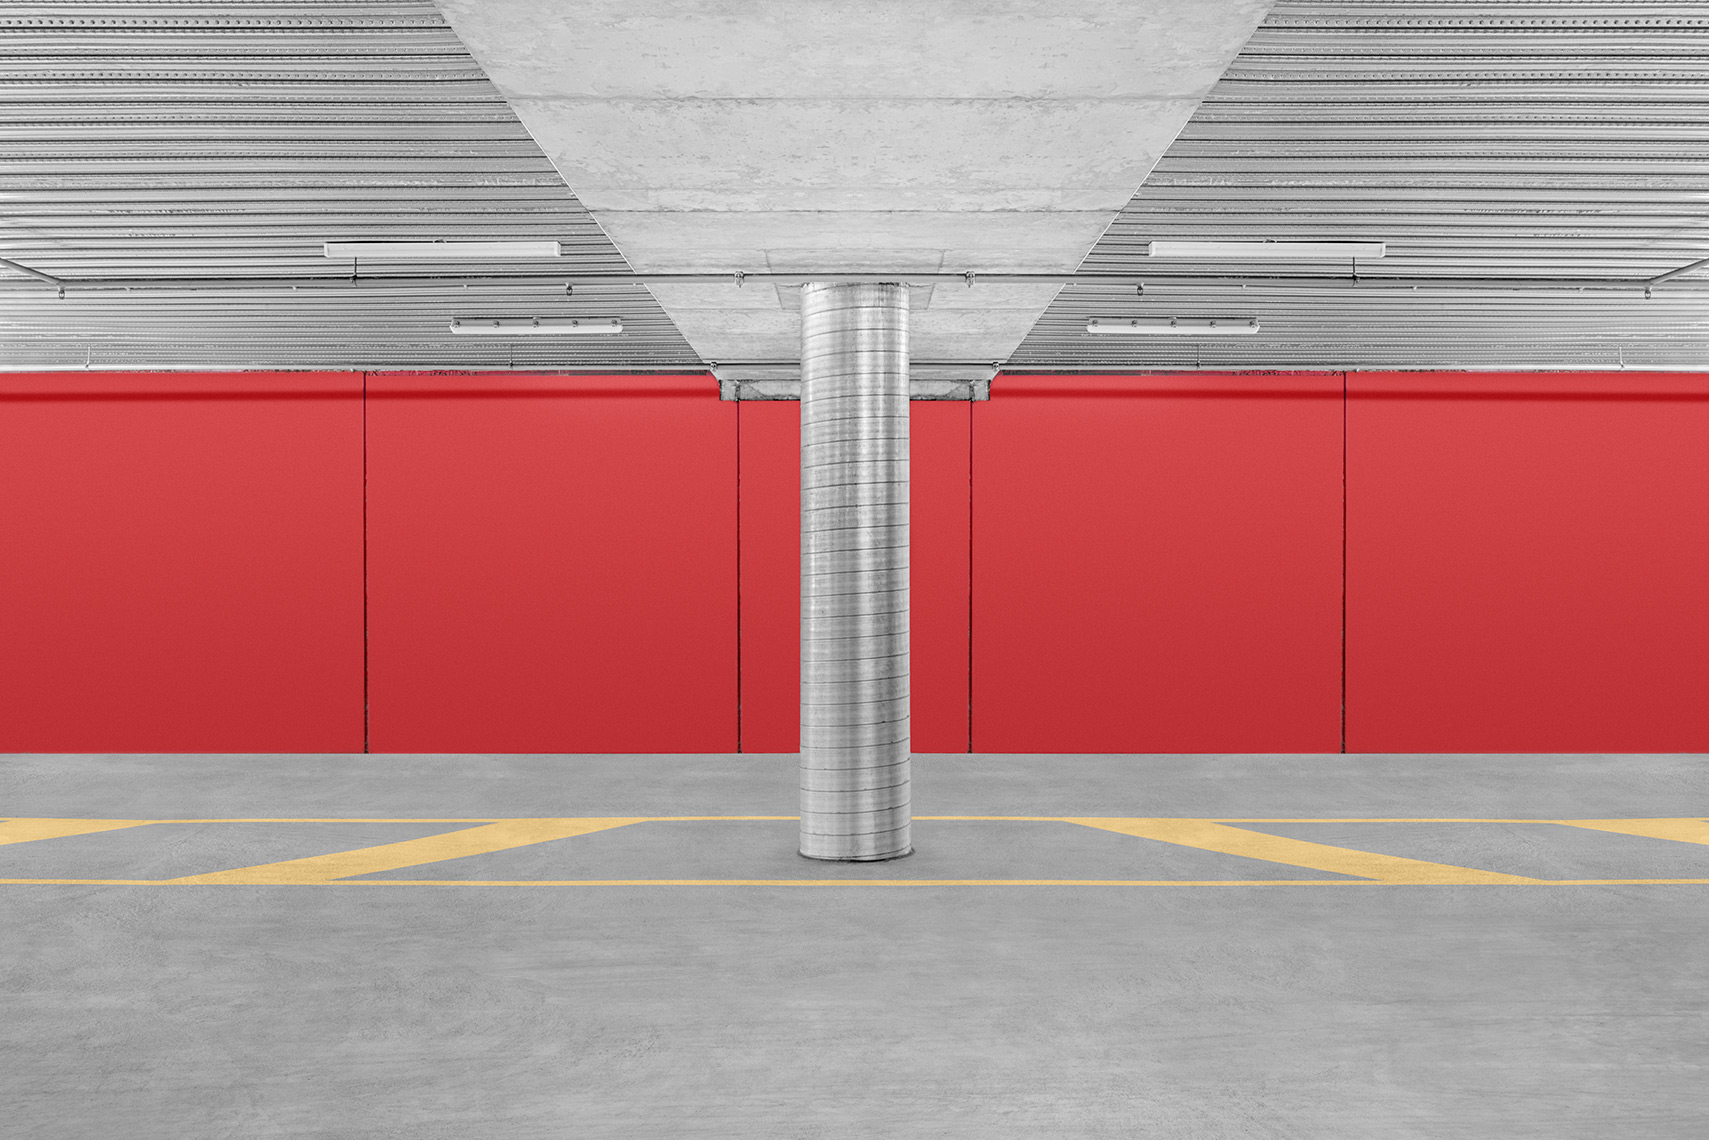 Zoe Wetherall / Architecture / Red